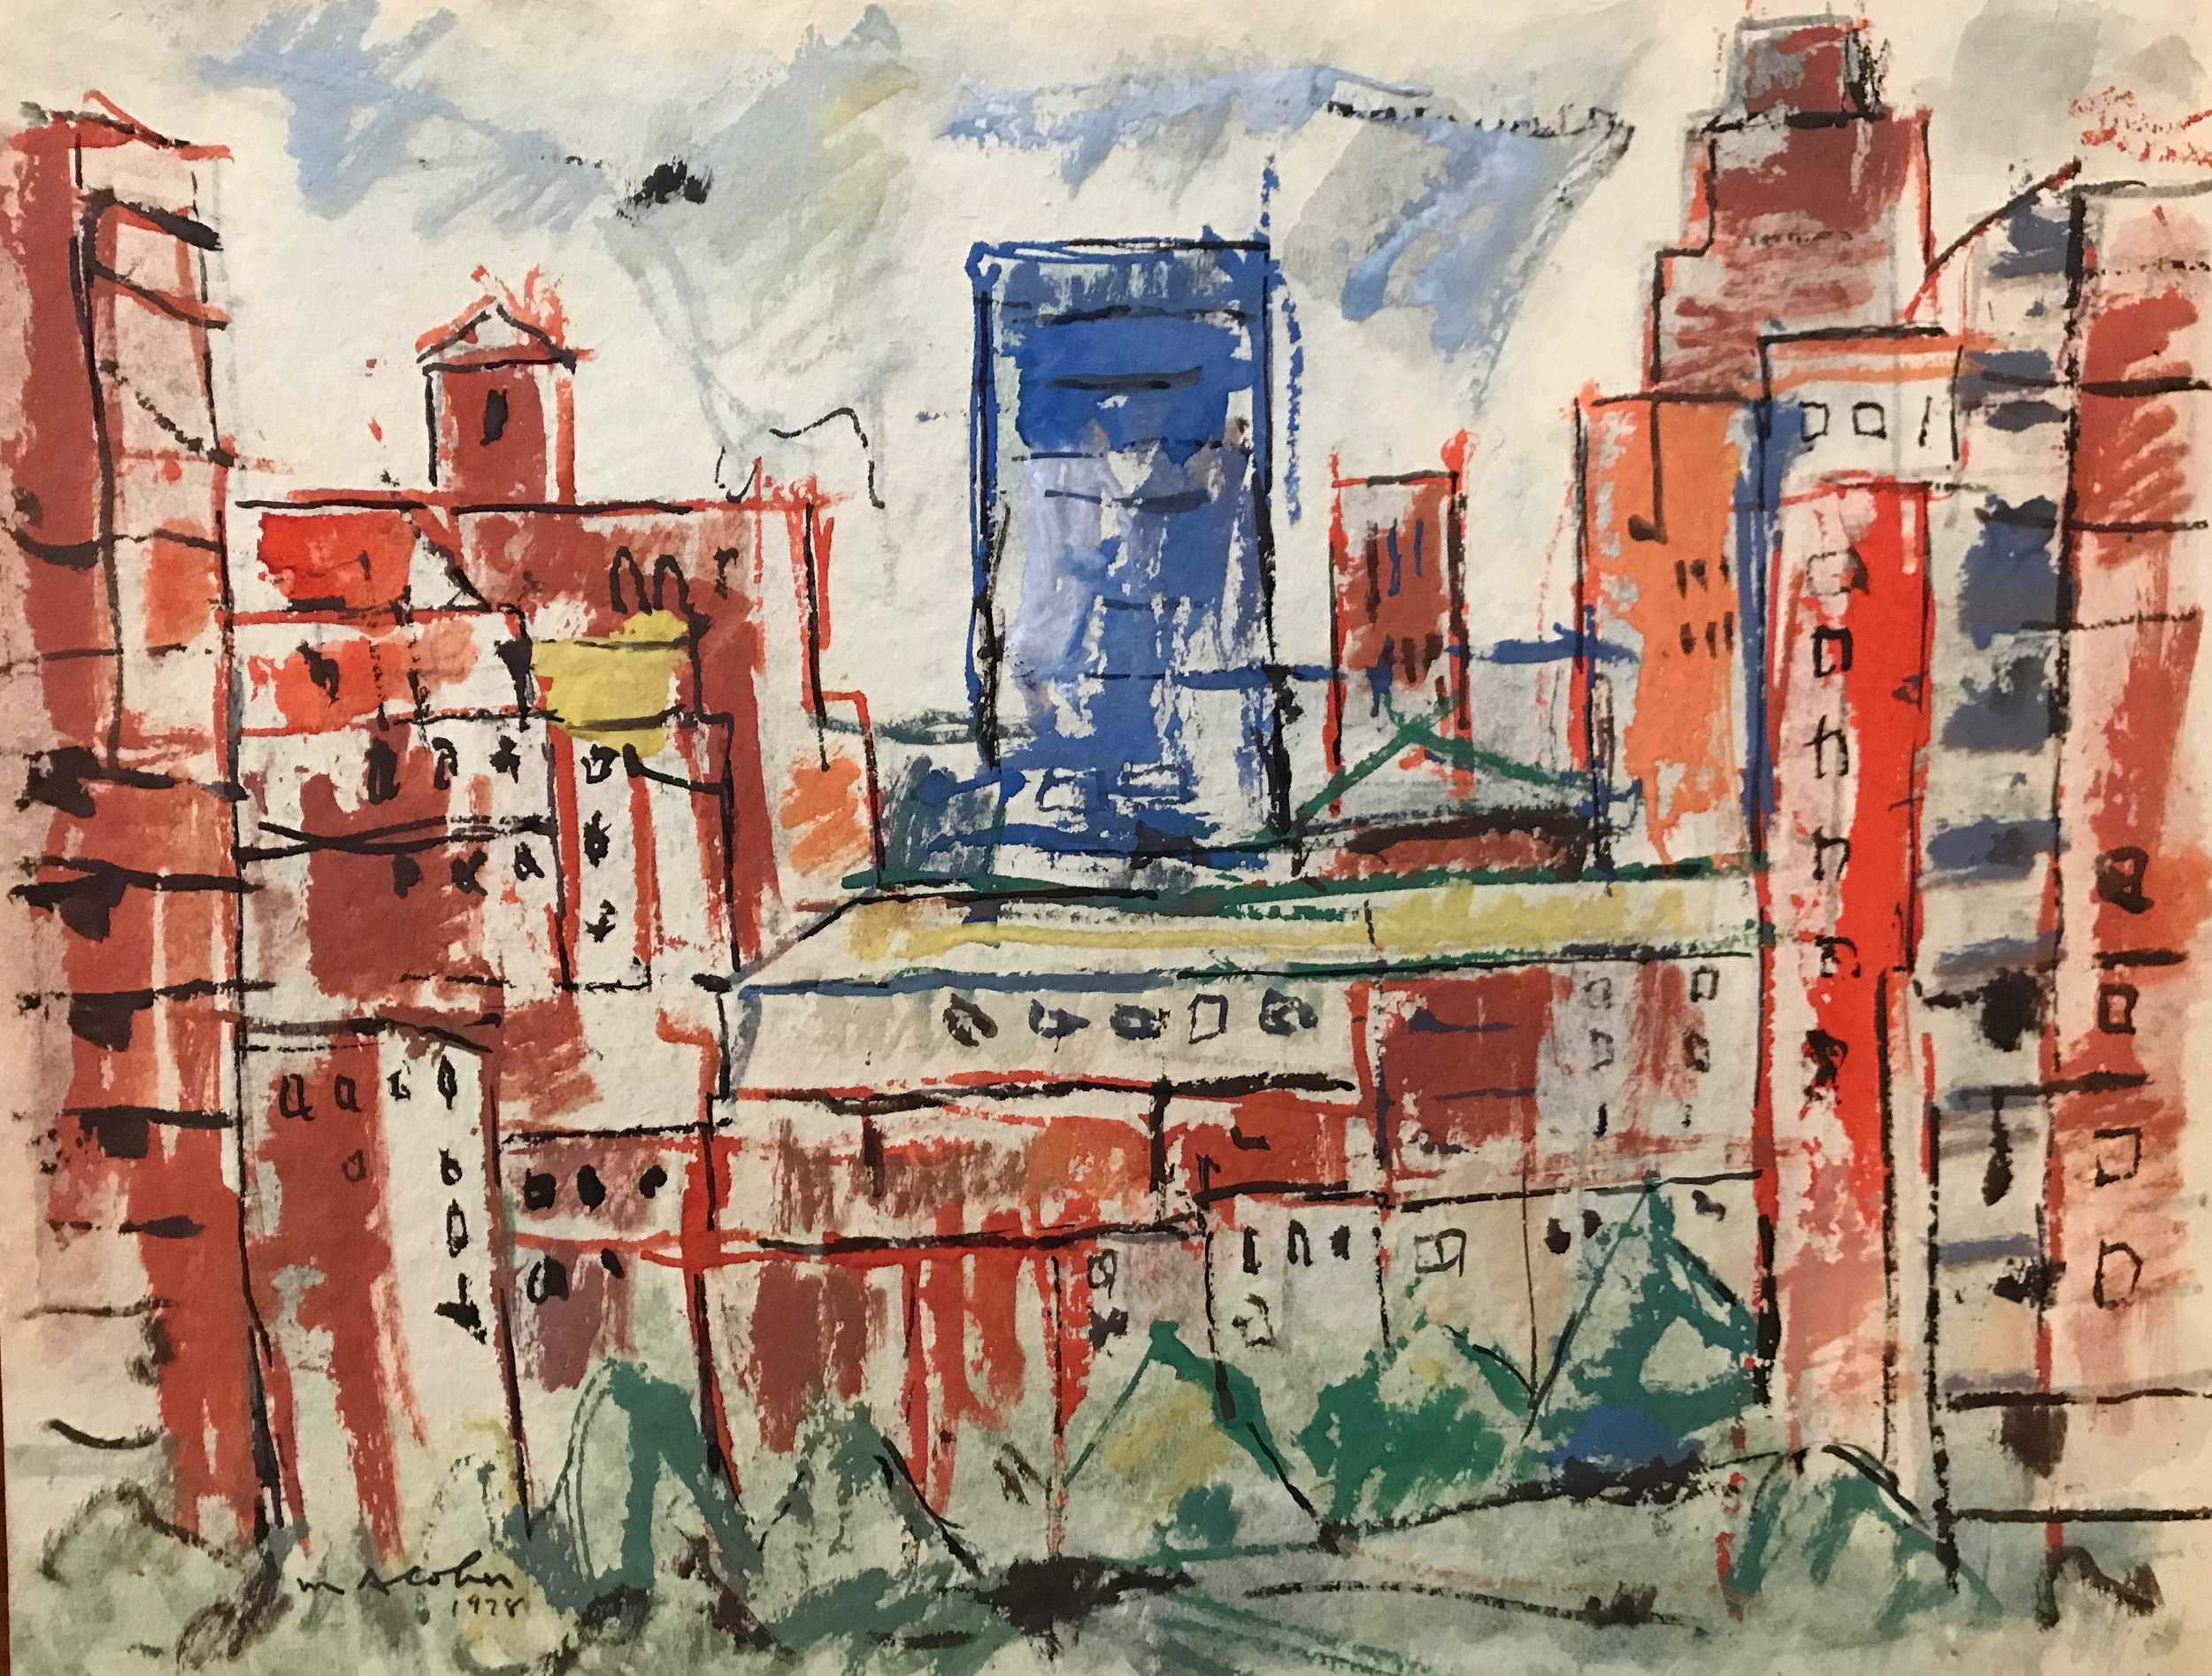 "McGraw Hill Building 1978-G3 by Max Arthur Cohn 1978 Gouache on Paper 11"" x 15"""